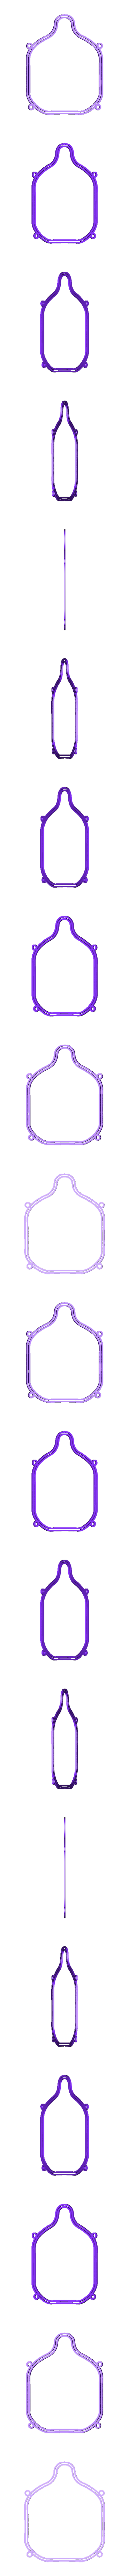 surgicalFrame8FullRings.stl Download free STL file Surgical Mask Frame • 3D printing object, ecoiras